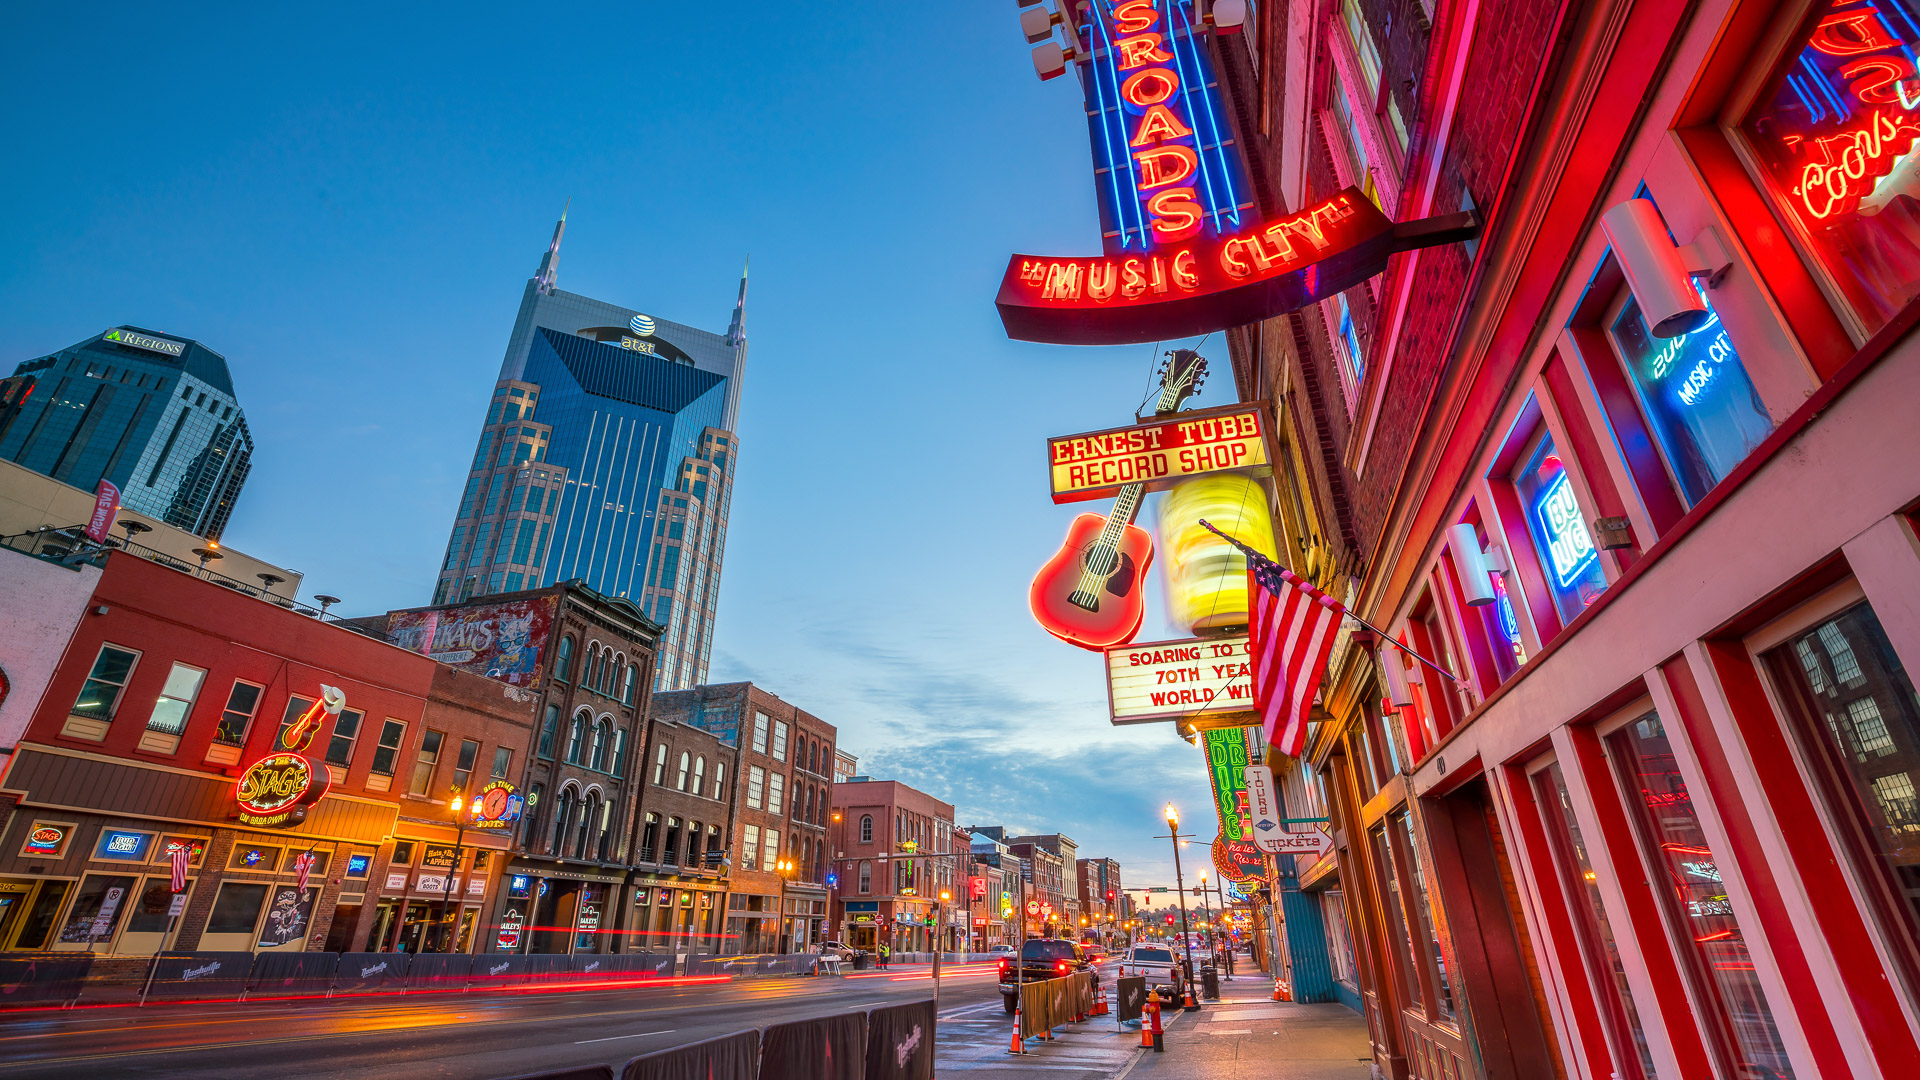 Slide 25 of 32: Meals: $348Drinks (including beer): $48.603-night hotel stay: $628Airfare: $703.62Nashville can get expensive, so look for free or low-cost activities to ease the financial pain. Sample Music City's offerings at the honky-tonks on Lower Broadway, which rarely, if ever, charge a cover.Still, your visit to Nashville could put a dent in your wallet. Instead of visiting here, enjoy premium travel for less by visiting one of these cities.